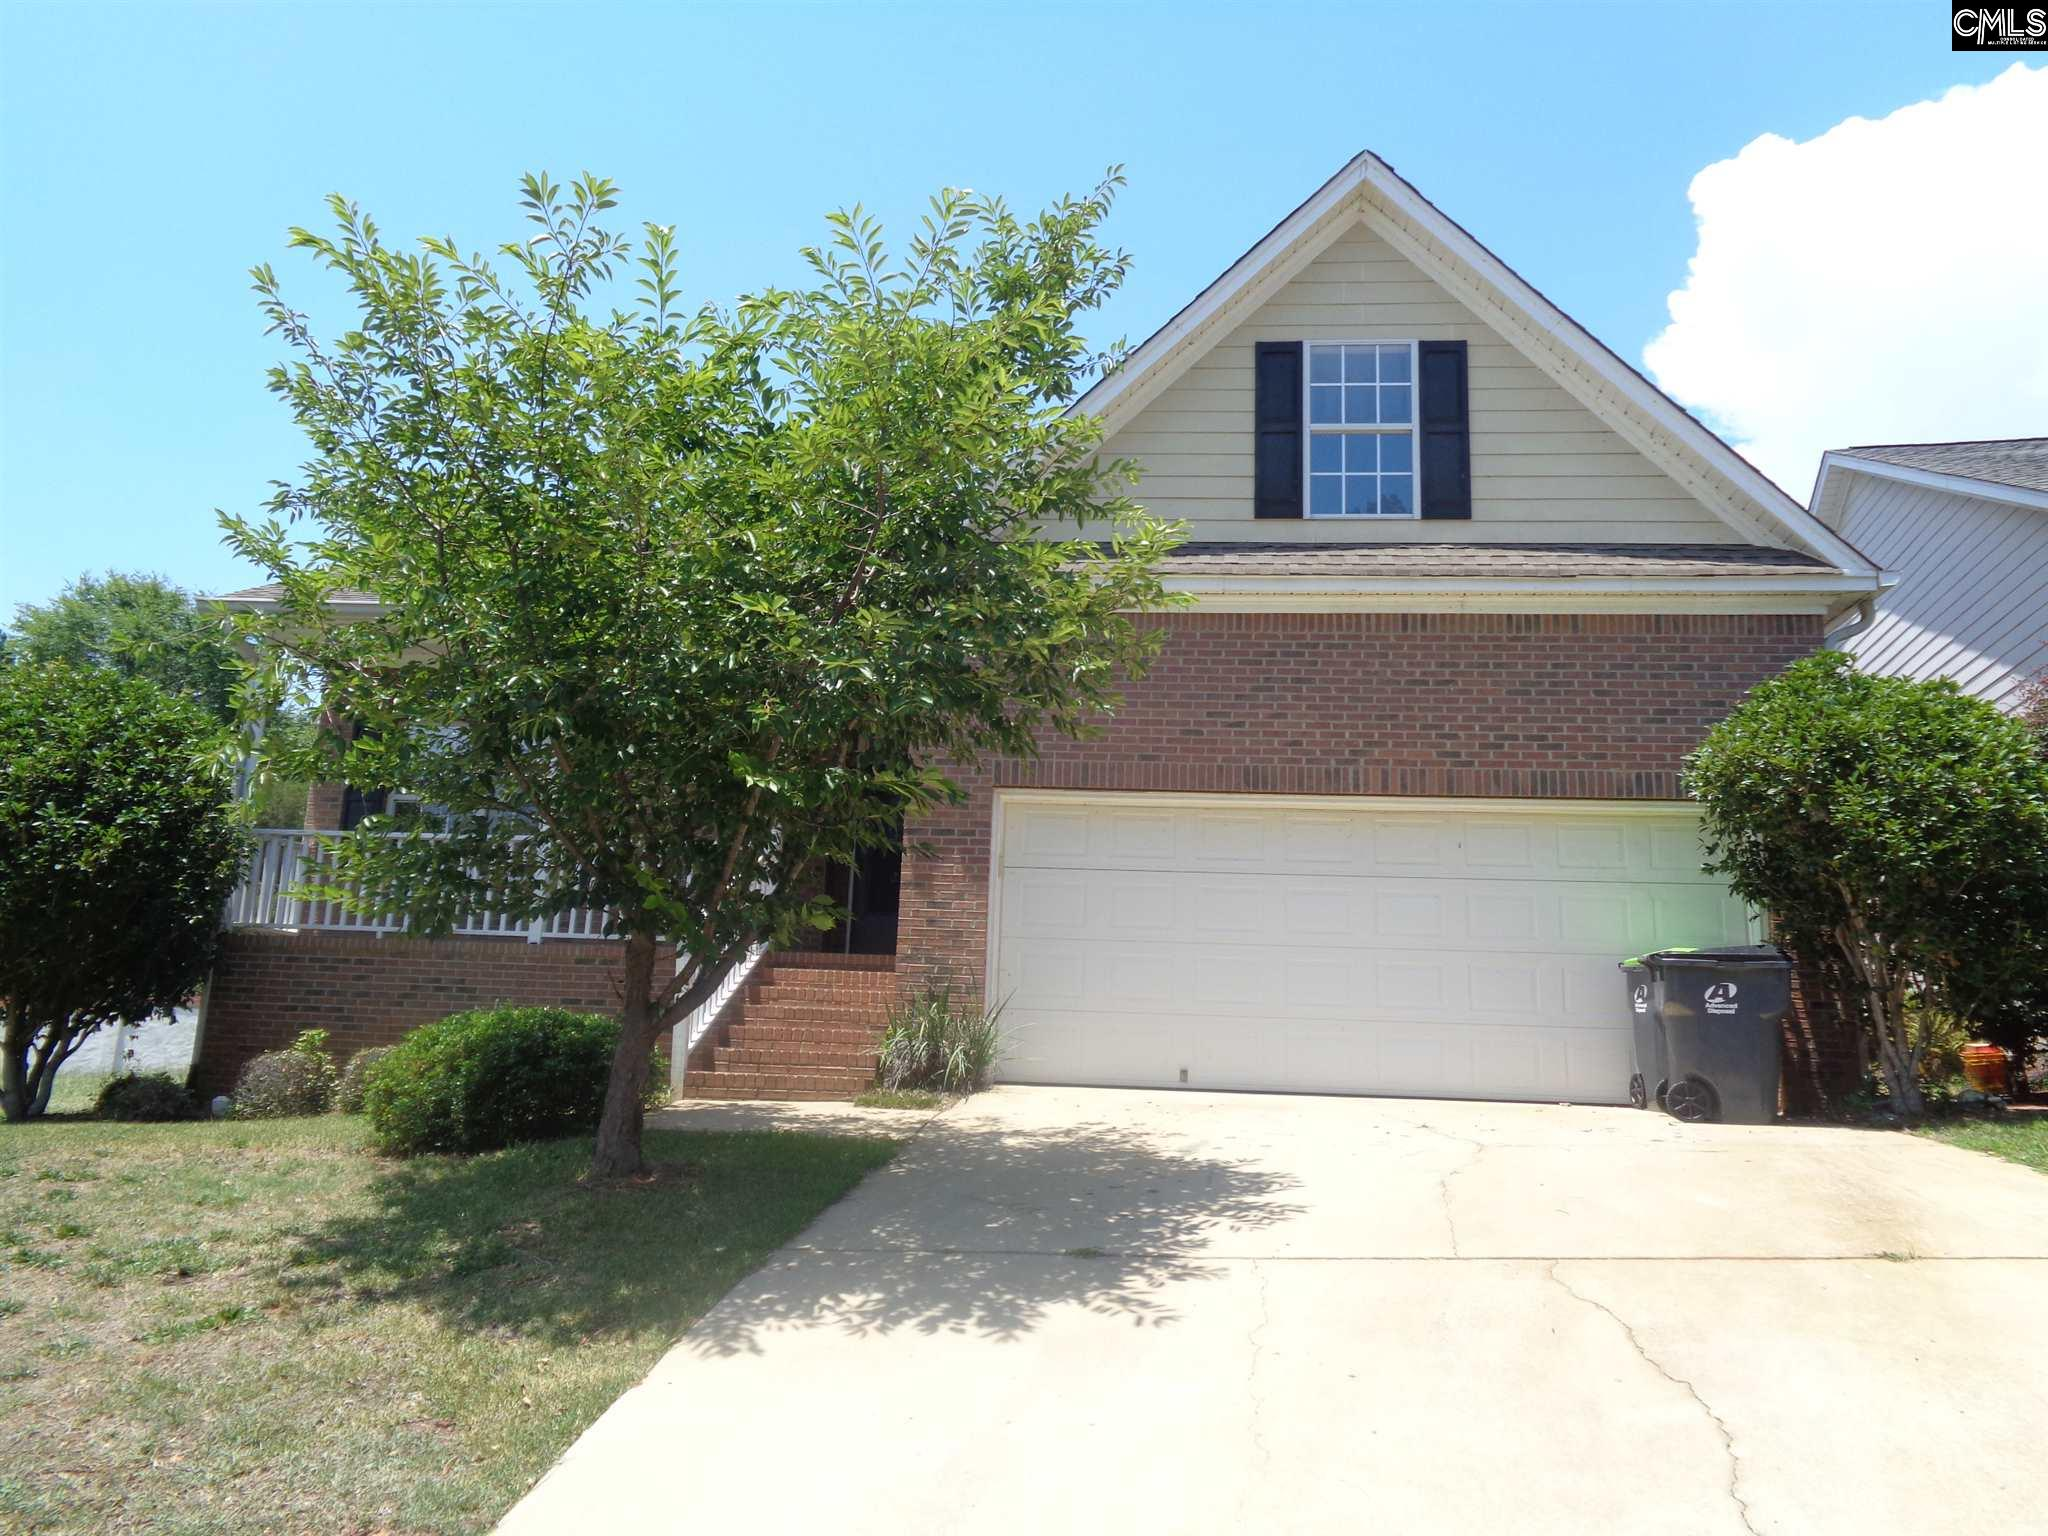 215 Fairway Ridge Chapin, SC 29036